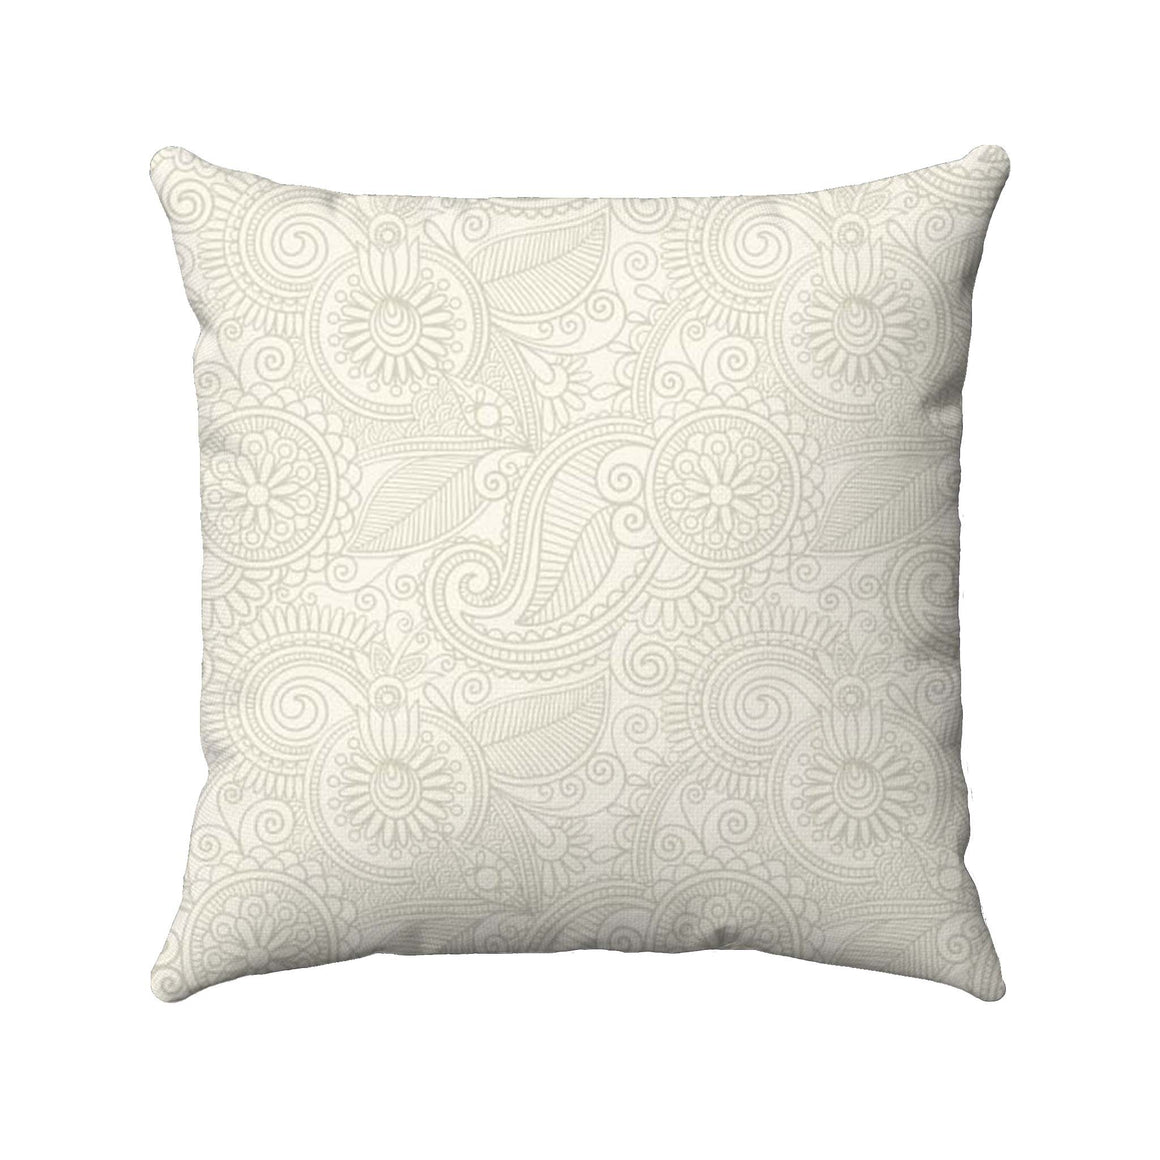 Paisley design with a neutral khaki color detailed on a bright cream background